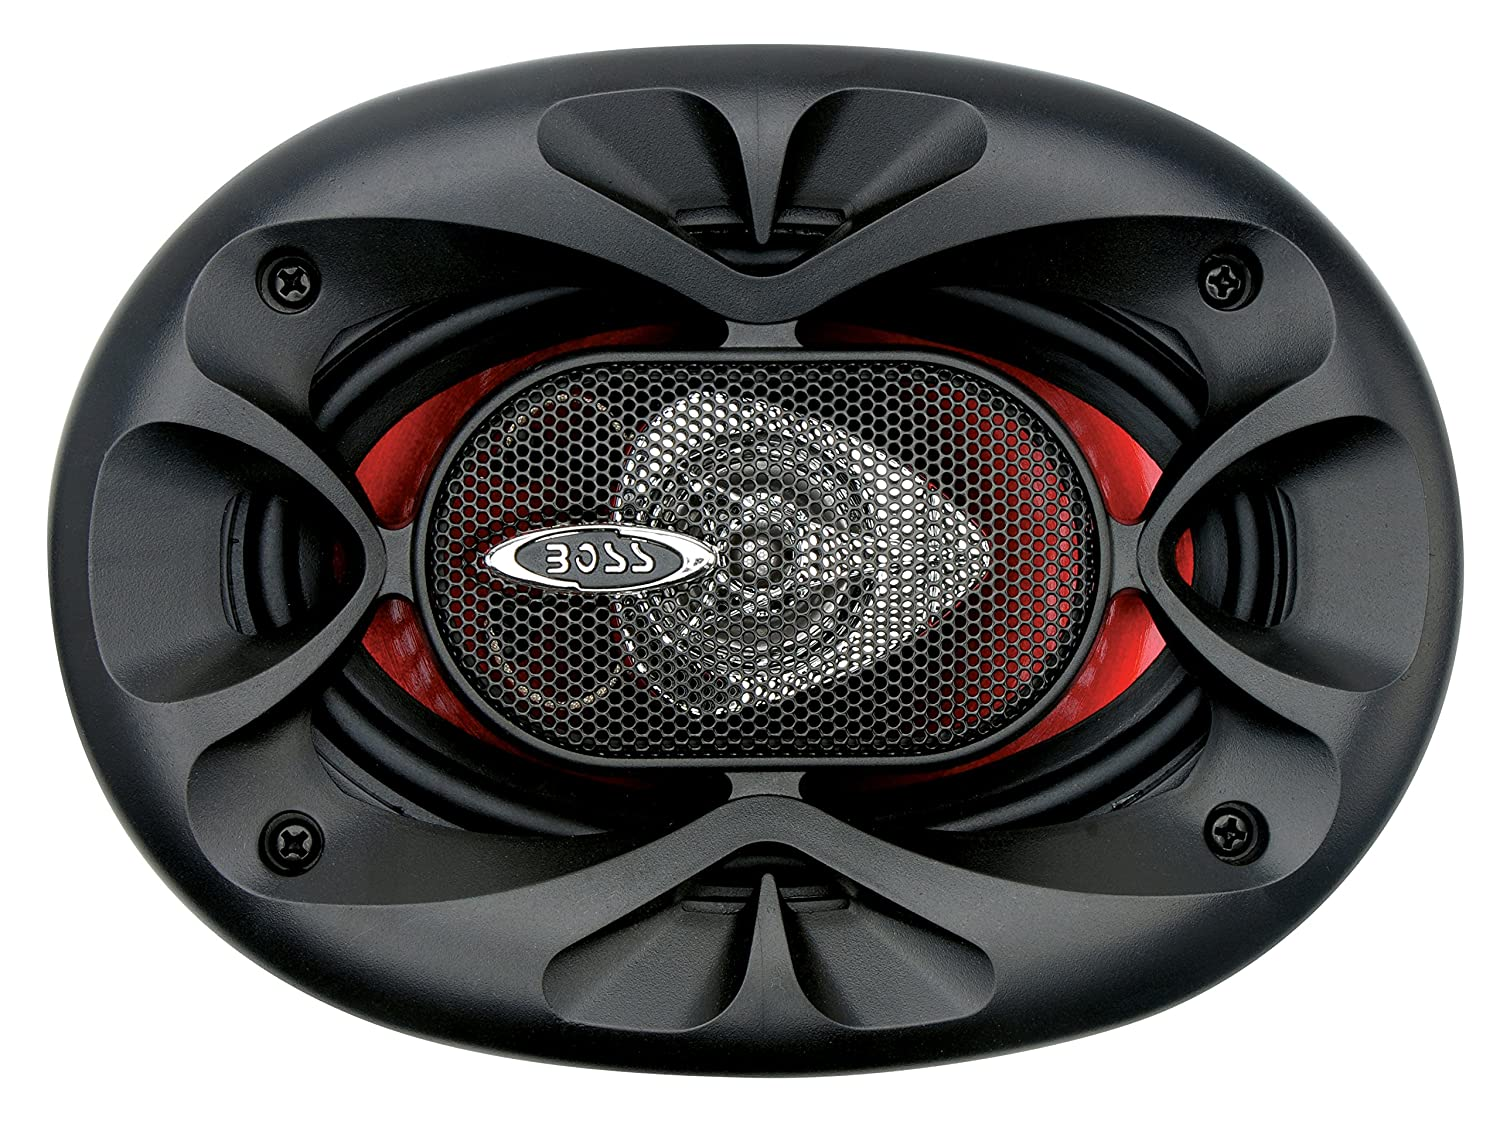 Pack of 2 Boss Audio Chaos Series 4x6 inch 2 Way Speaker